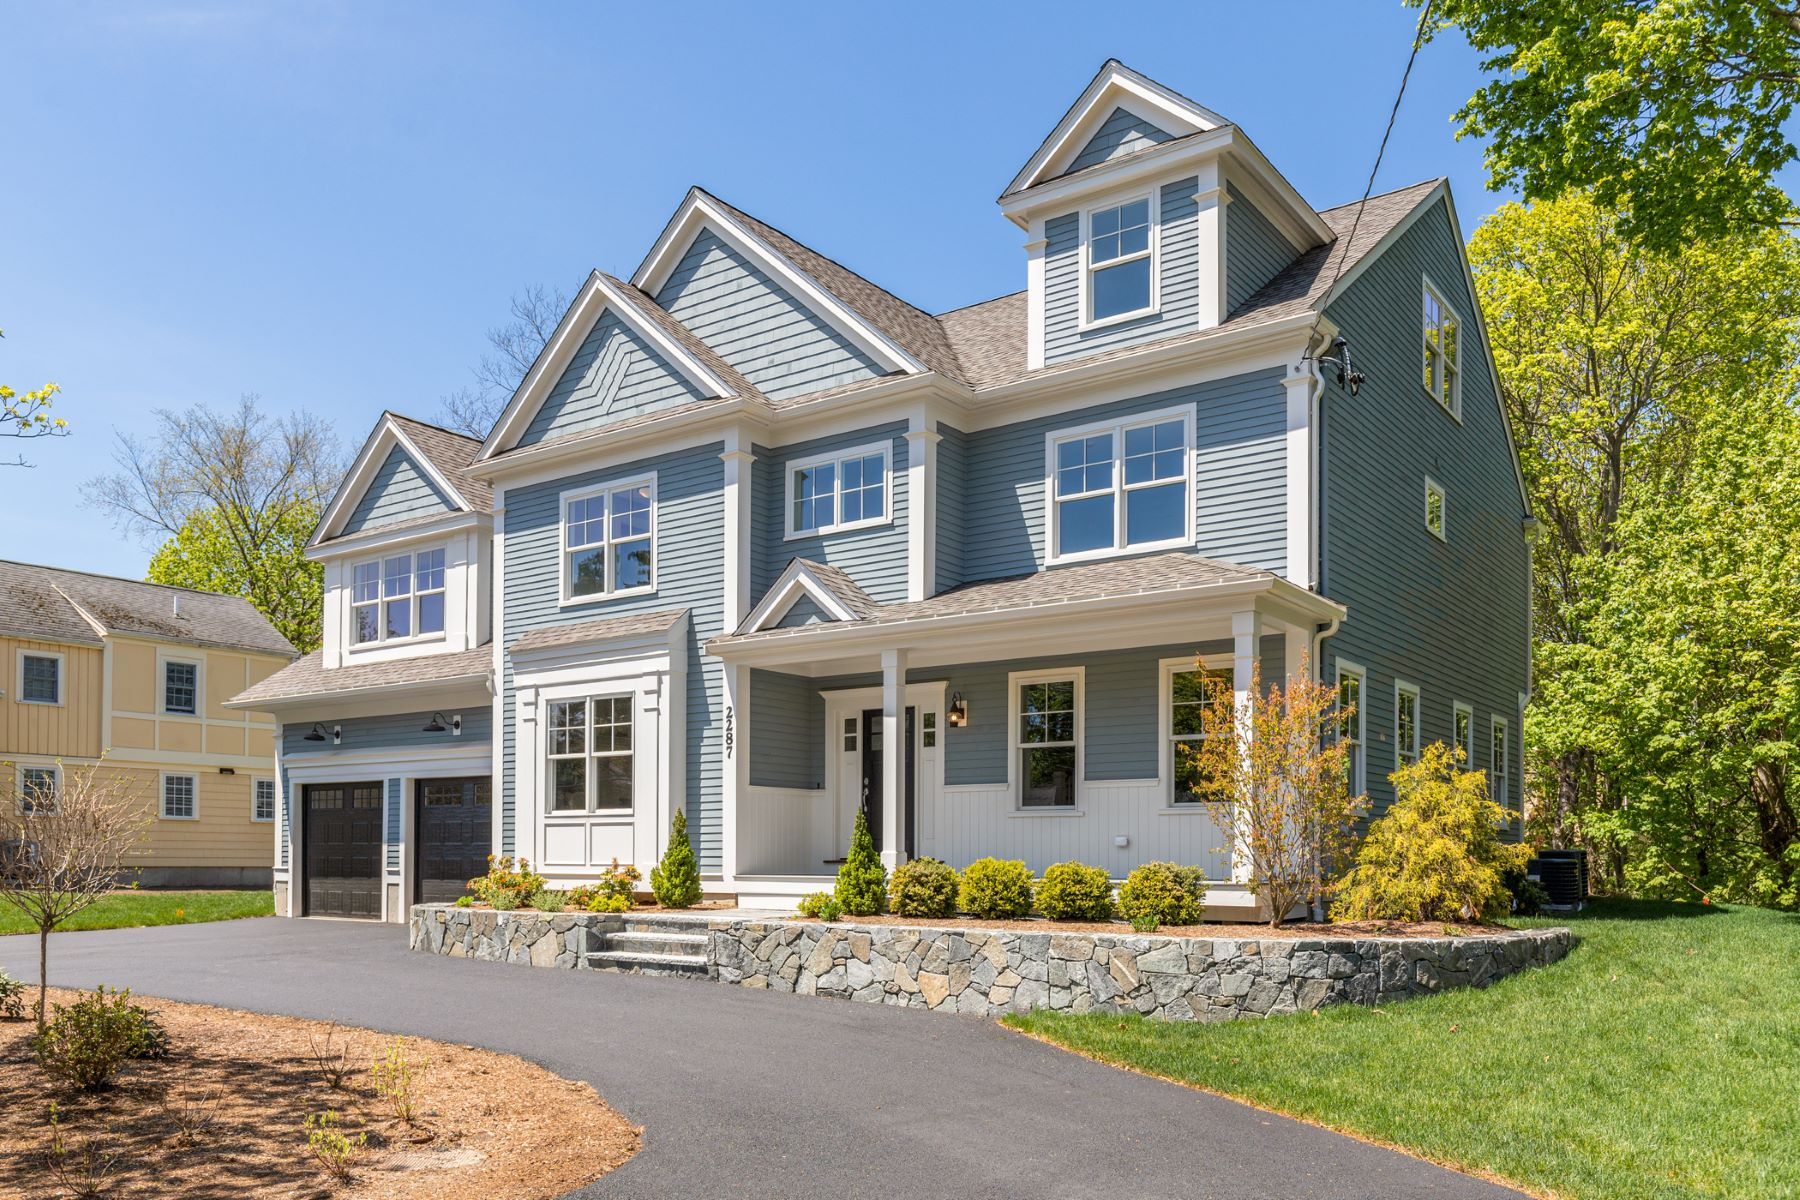 Single Family Homes for Active at 2287 Massachusetts Ave Lexington, Massachusetts 02421 United States